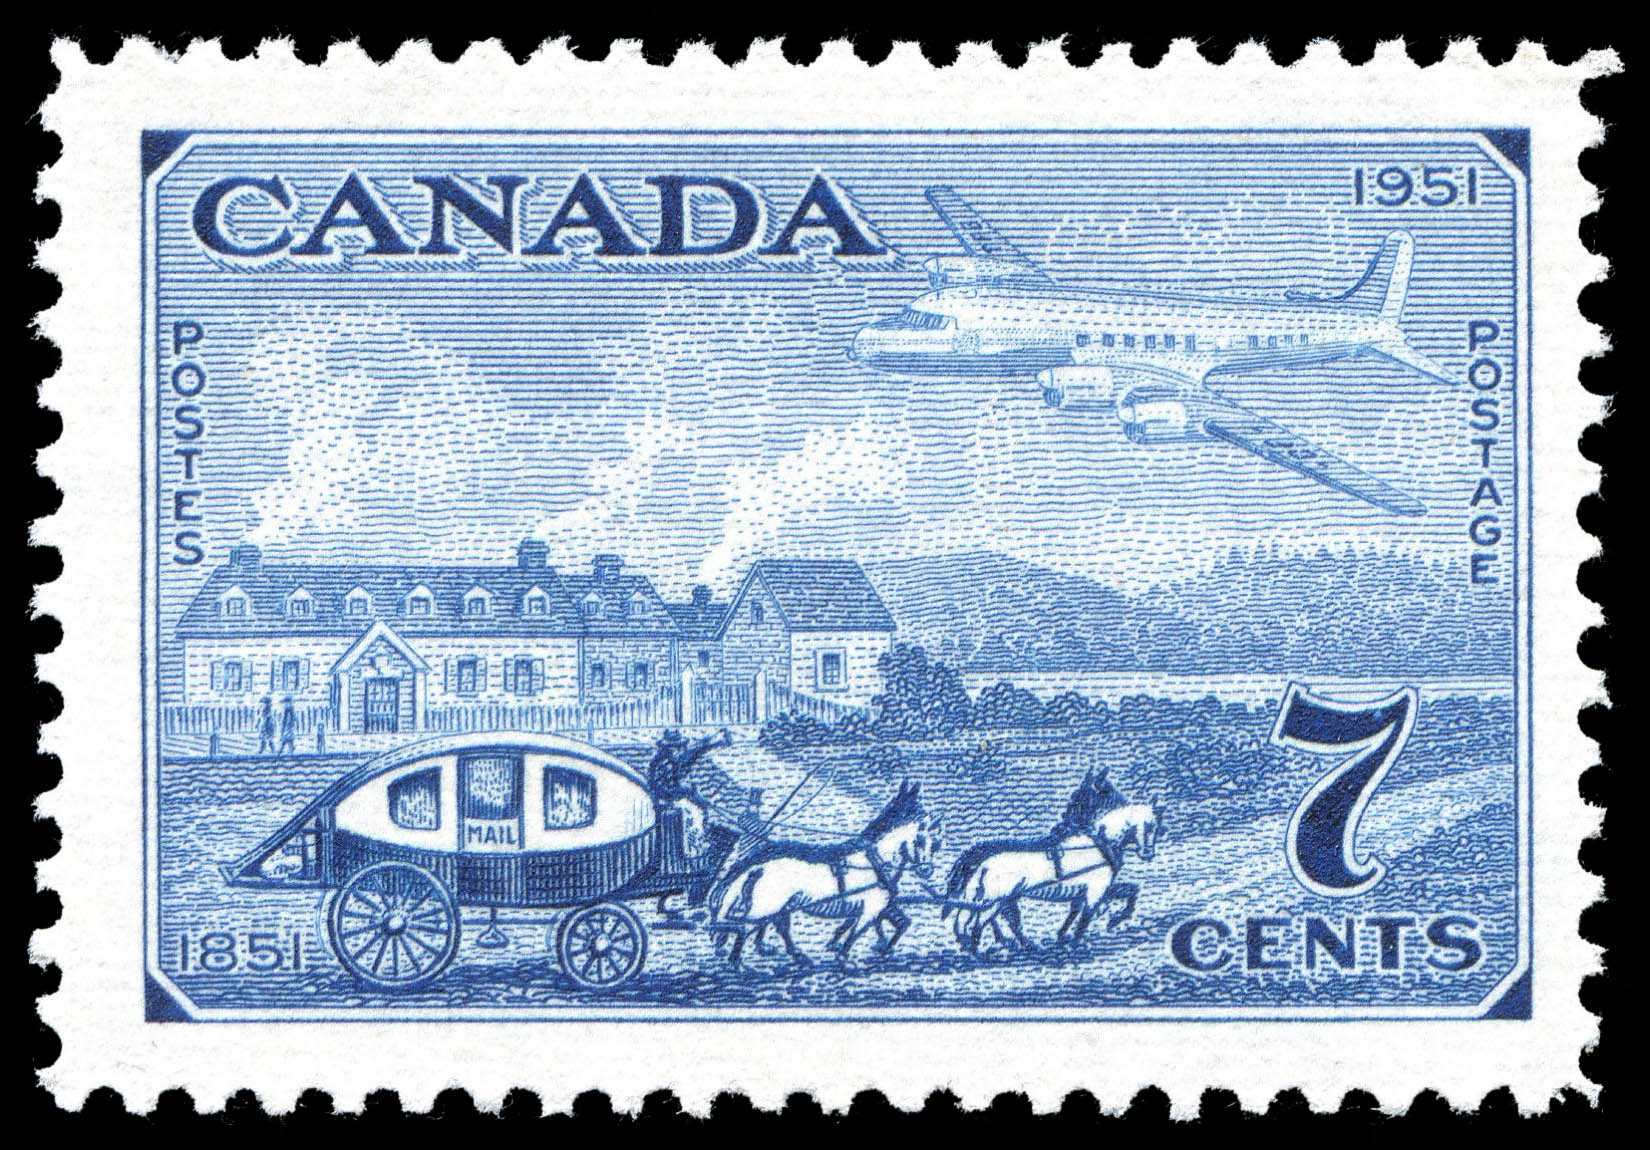 Stagecoach of 1851 & Plane of 1951 Canada Postage Stamp